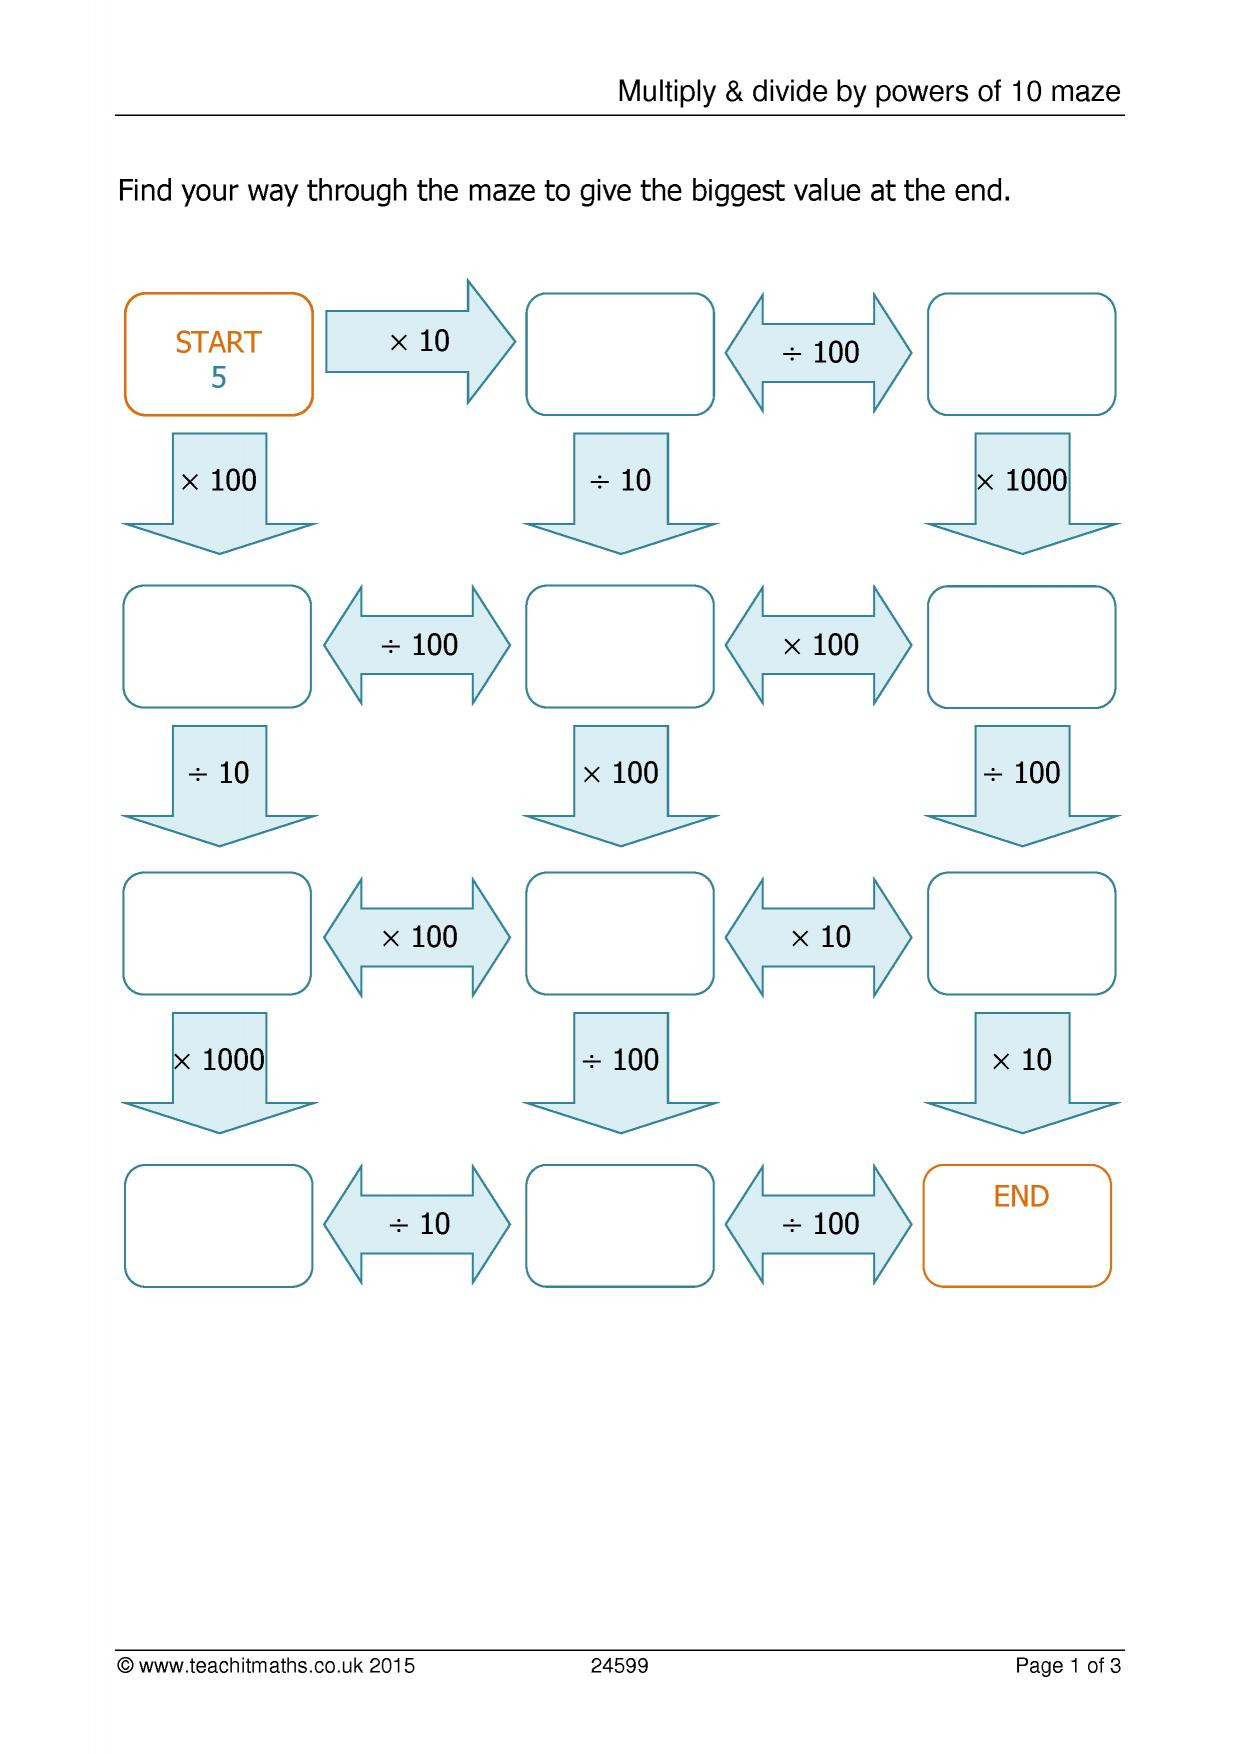 Multiplying Powers Of 10 Worksheet Multiply & Divide by Powers Of 10 Maze